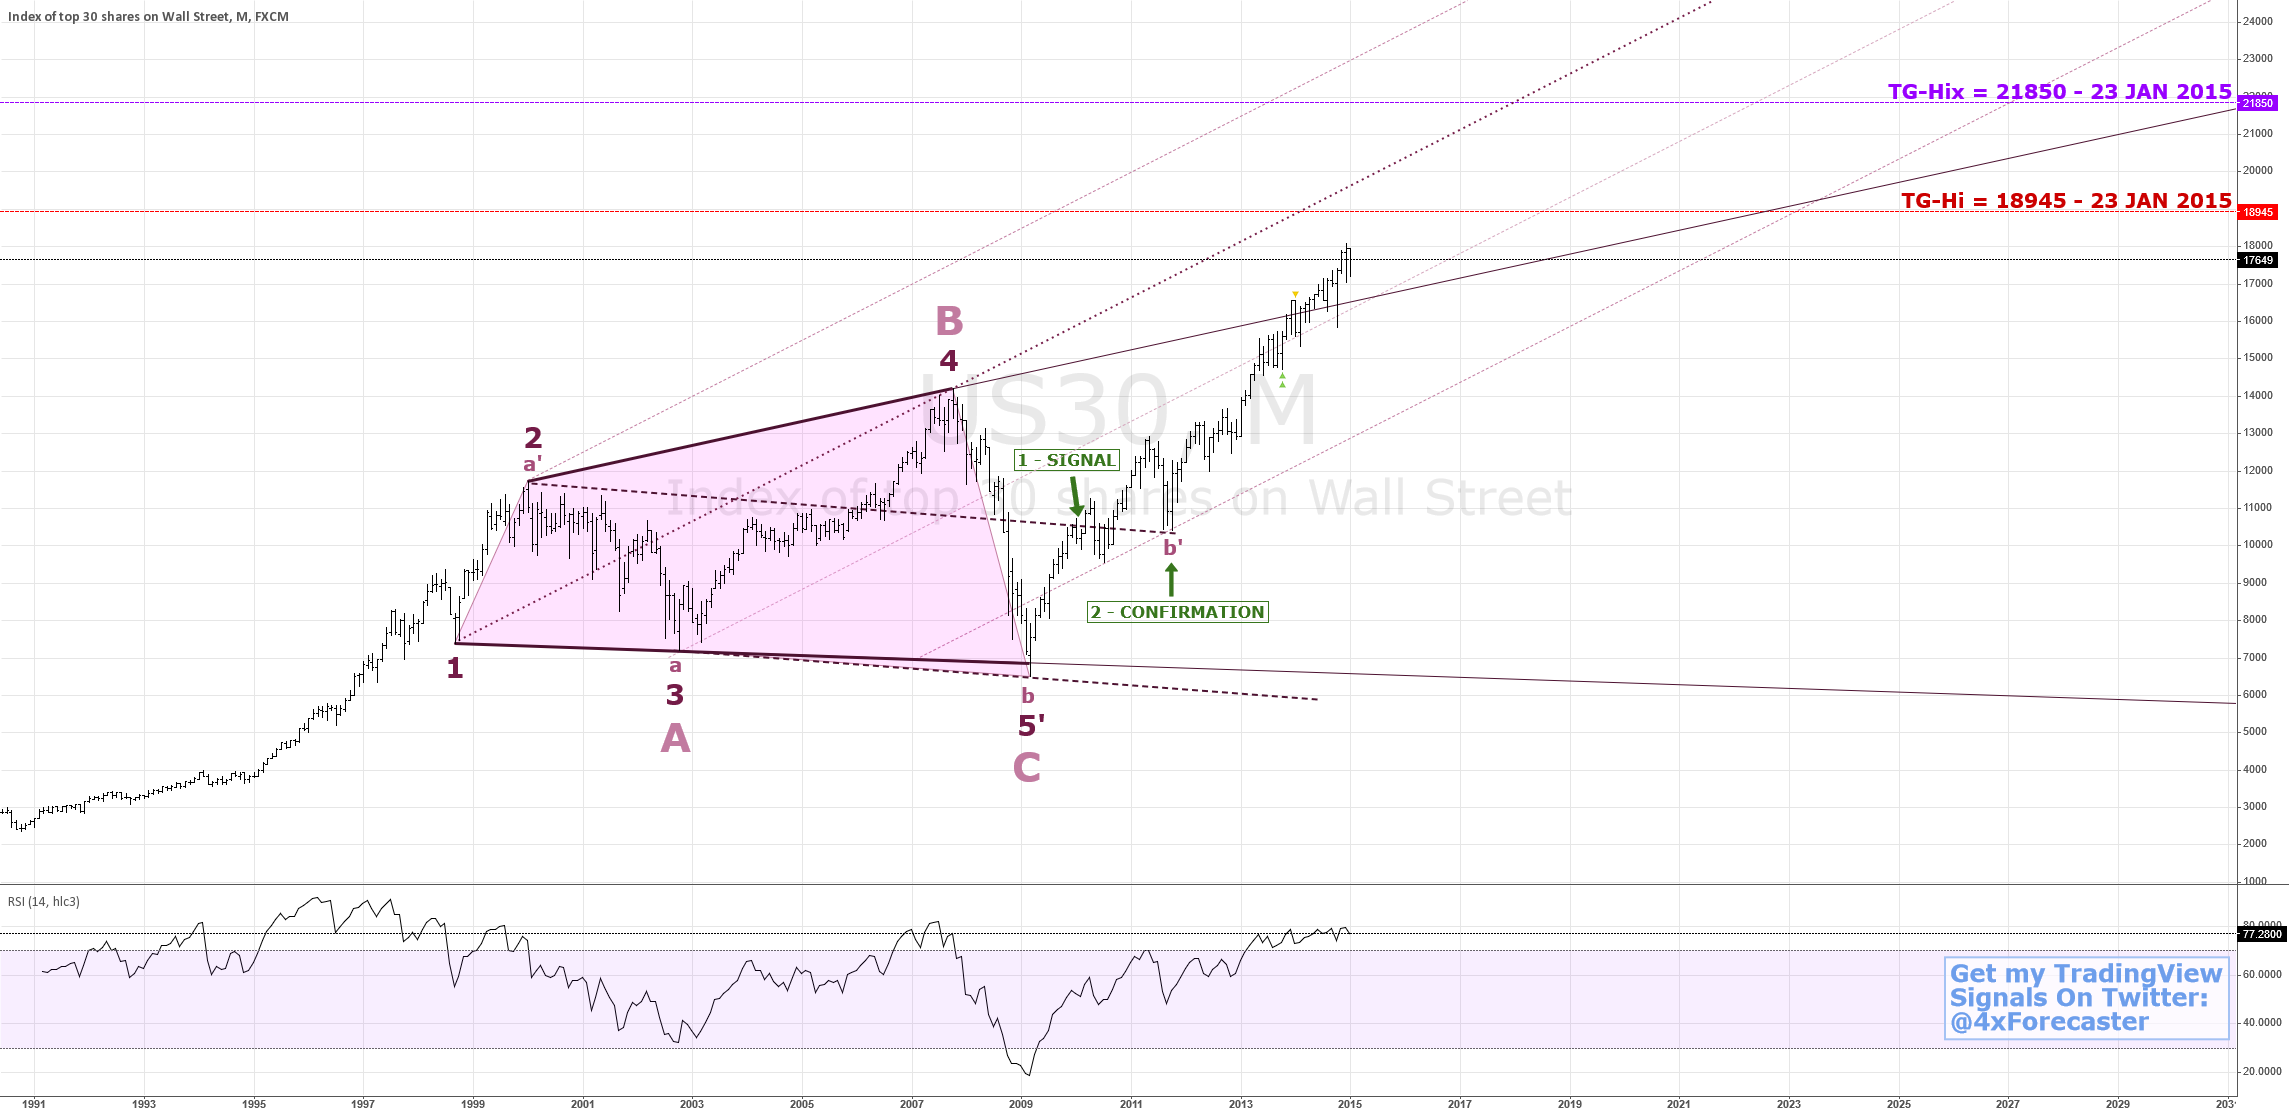 Could $DJIA Rise To 21850? | $SPX $NDX $DJIA $VIX $GLD $SLV